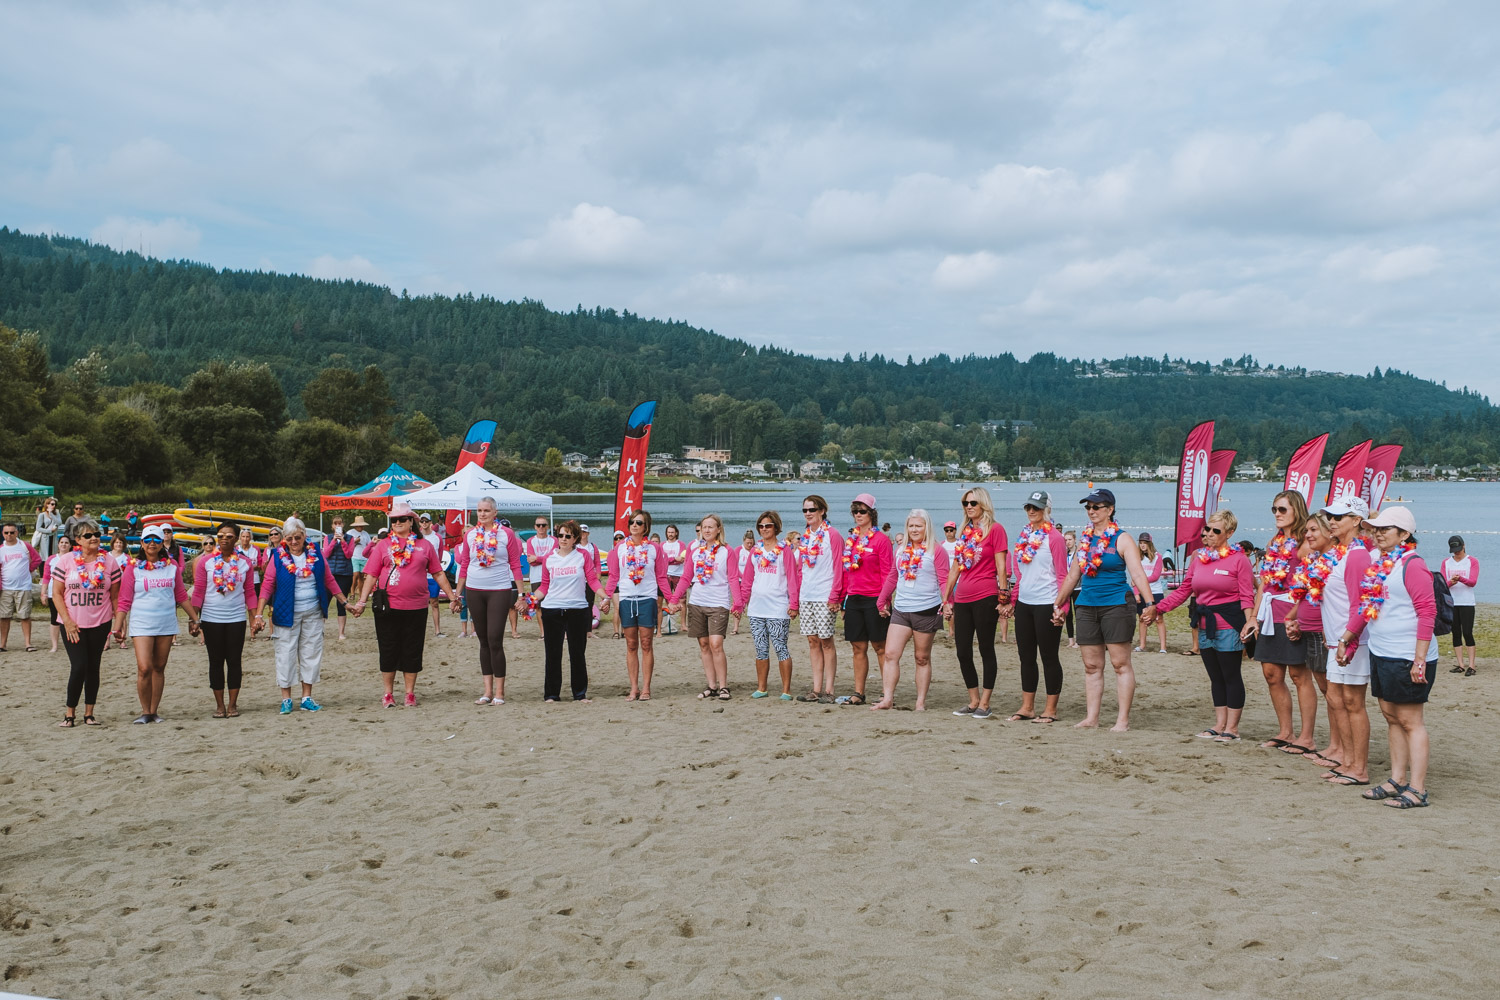 Located right on Lake Sammamish, the third annual Stand Up for the Cure brought out paddlers of all levels to raise money for early breast cancer detection, treatment, and education, with proceeds going to Susan G. Komen Puget Sound. Participants enjoyed instructor-led classes, demos, live music, happy hour,{ } delicious food, and races! (Ryan McBoyle / Seattle Refined)